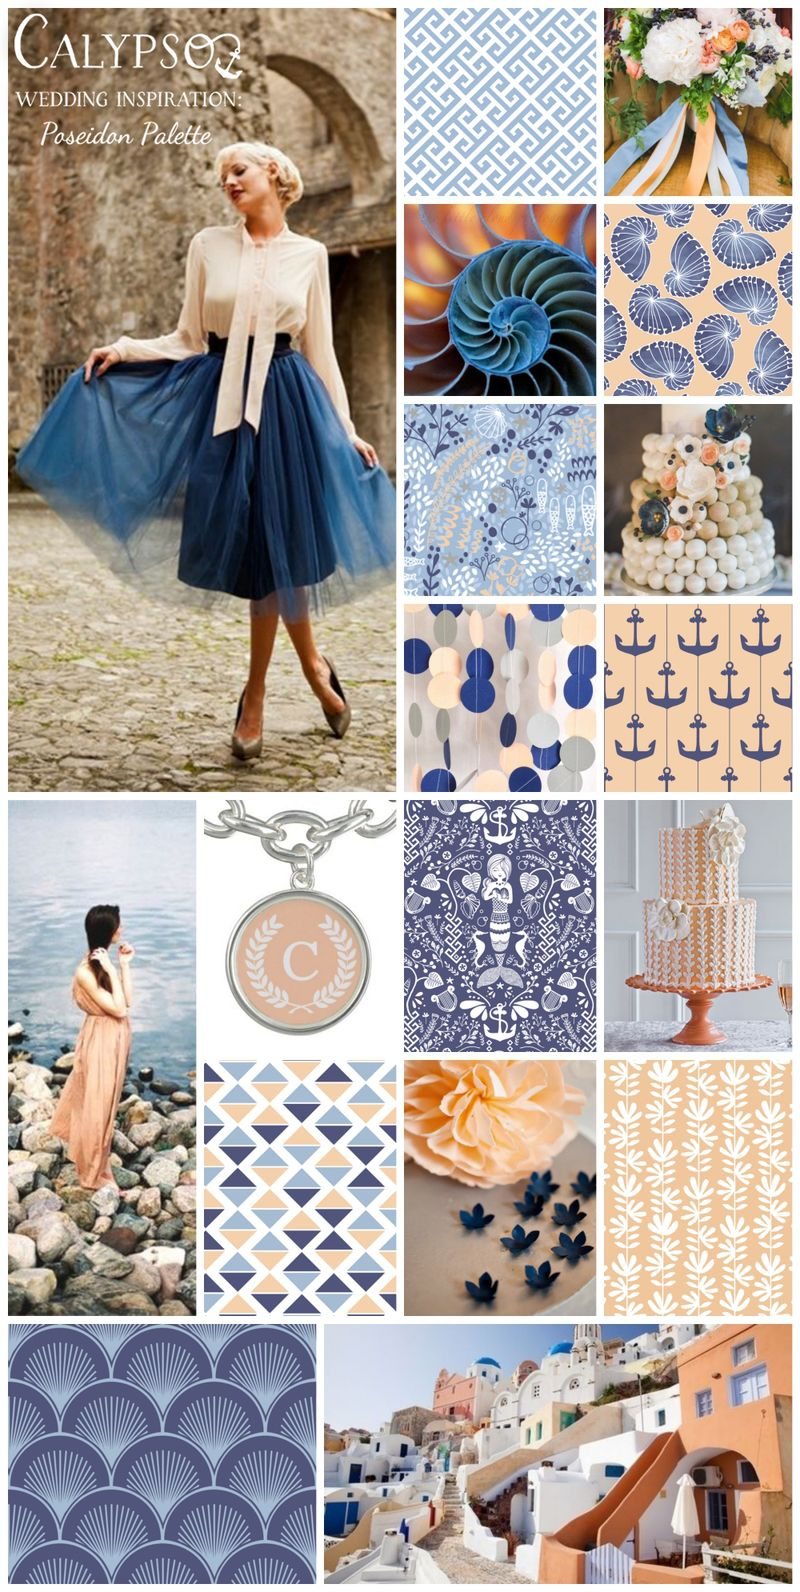 Wedding Inspiration Poseidon